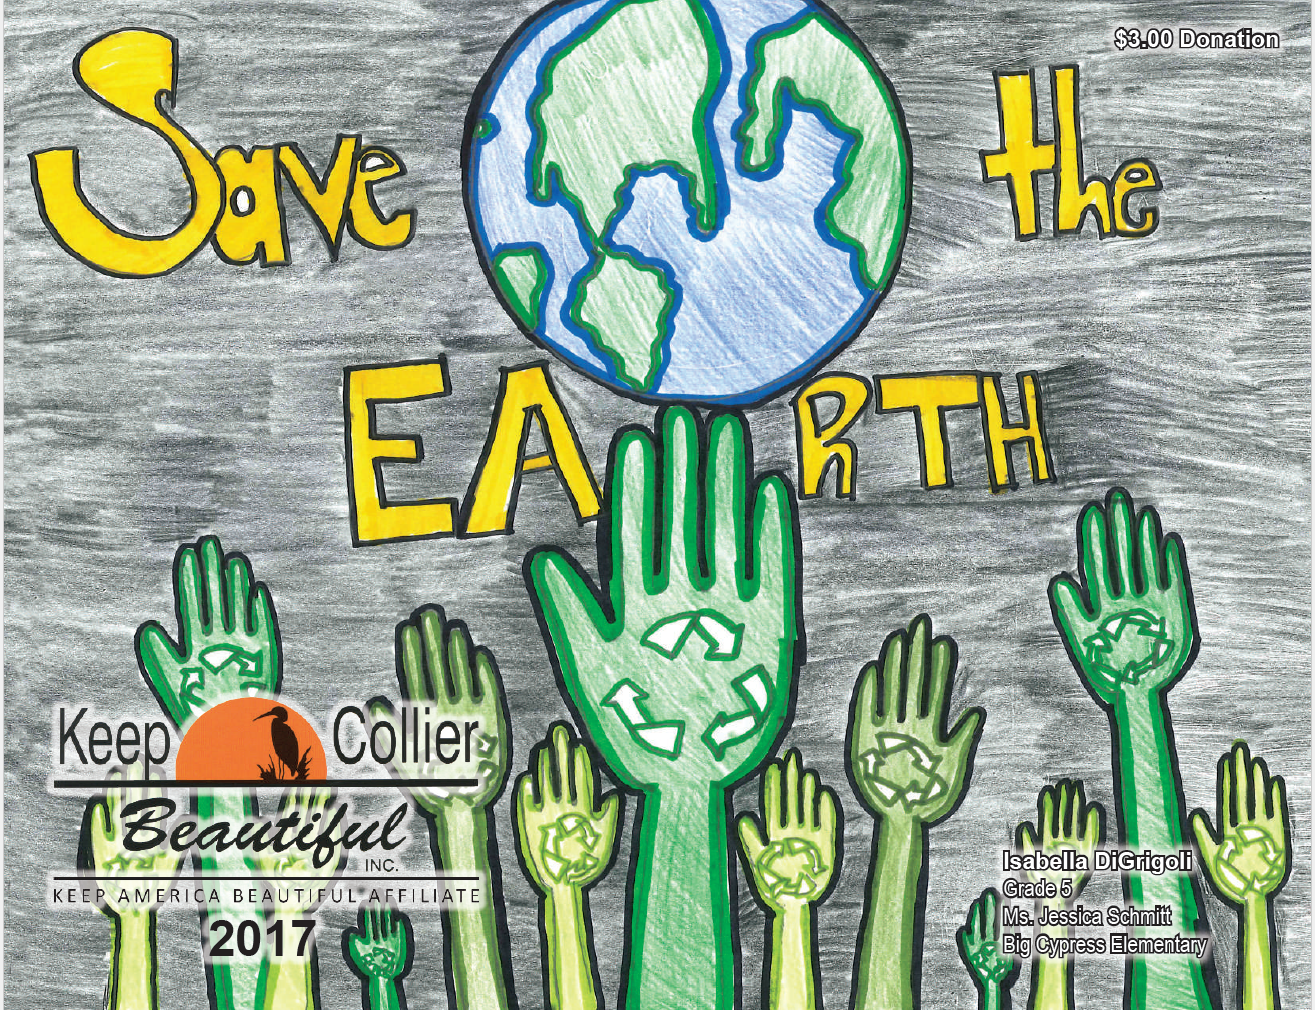 Collier County FL County School Recycling Challenge